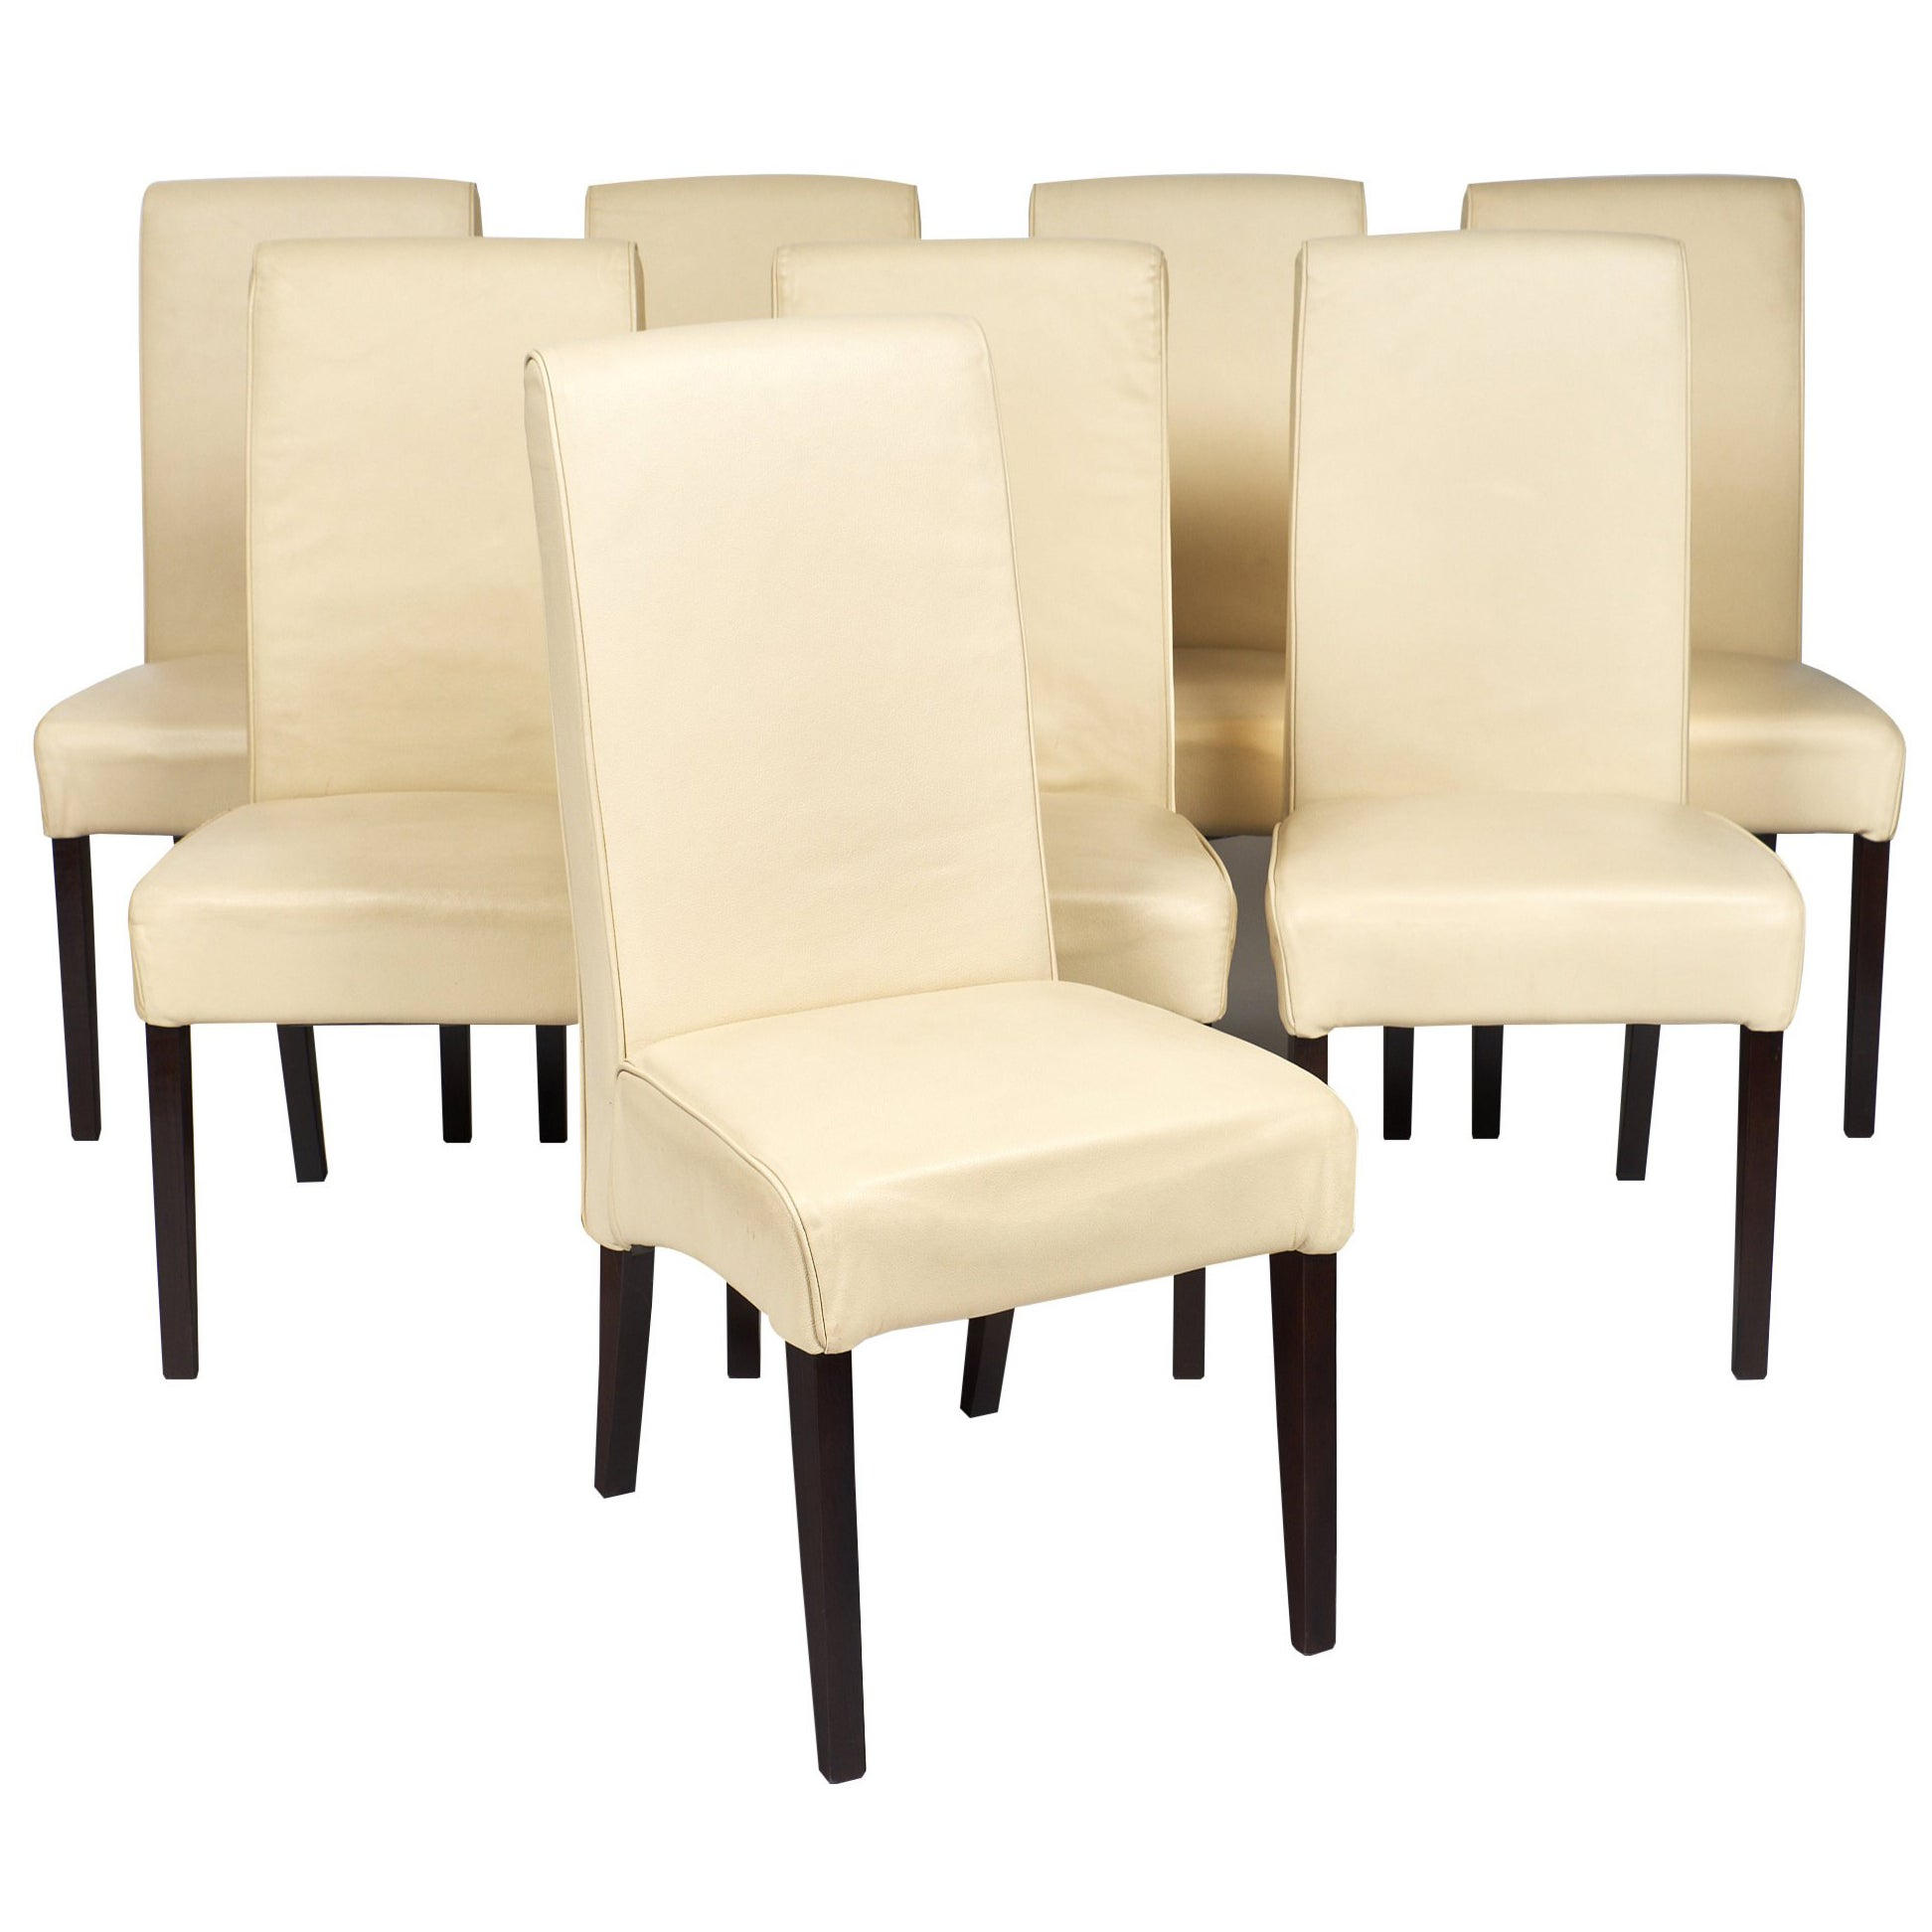 Italian Dining Chairs Leather Italian Dining Chairs